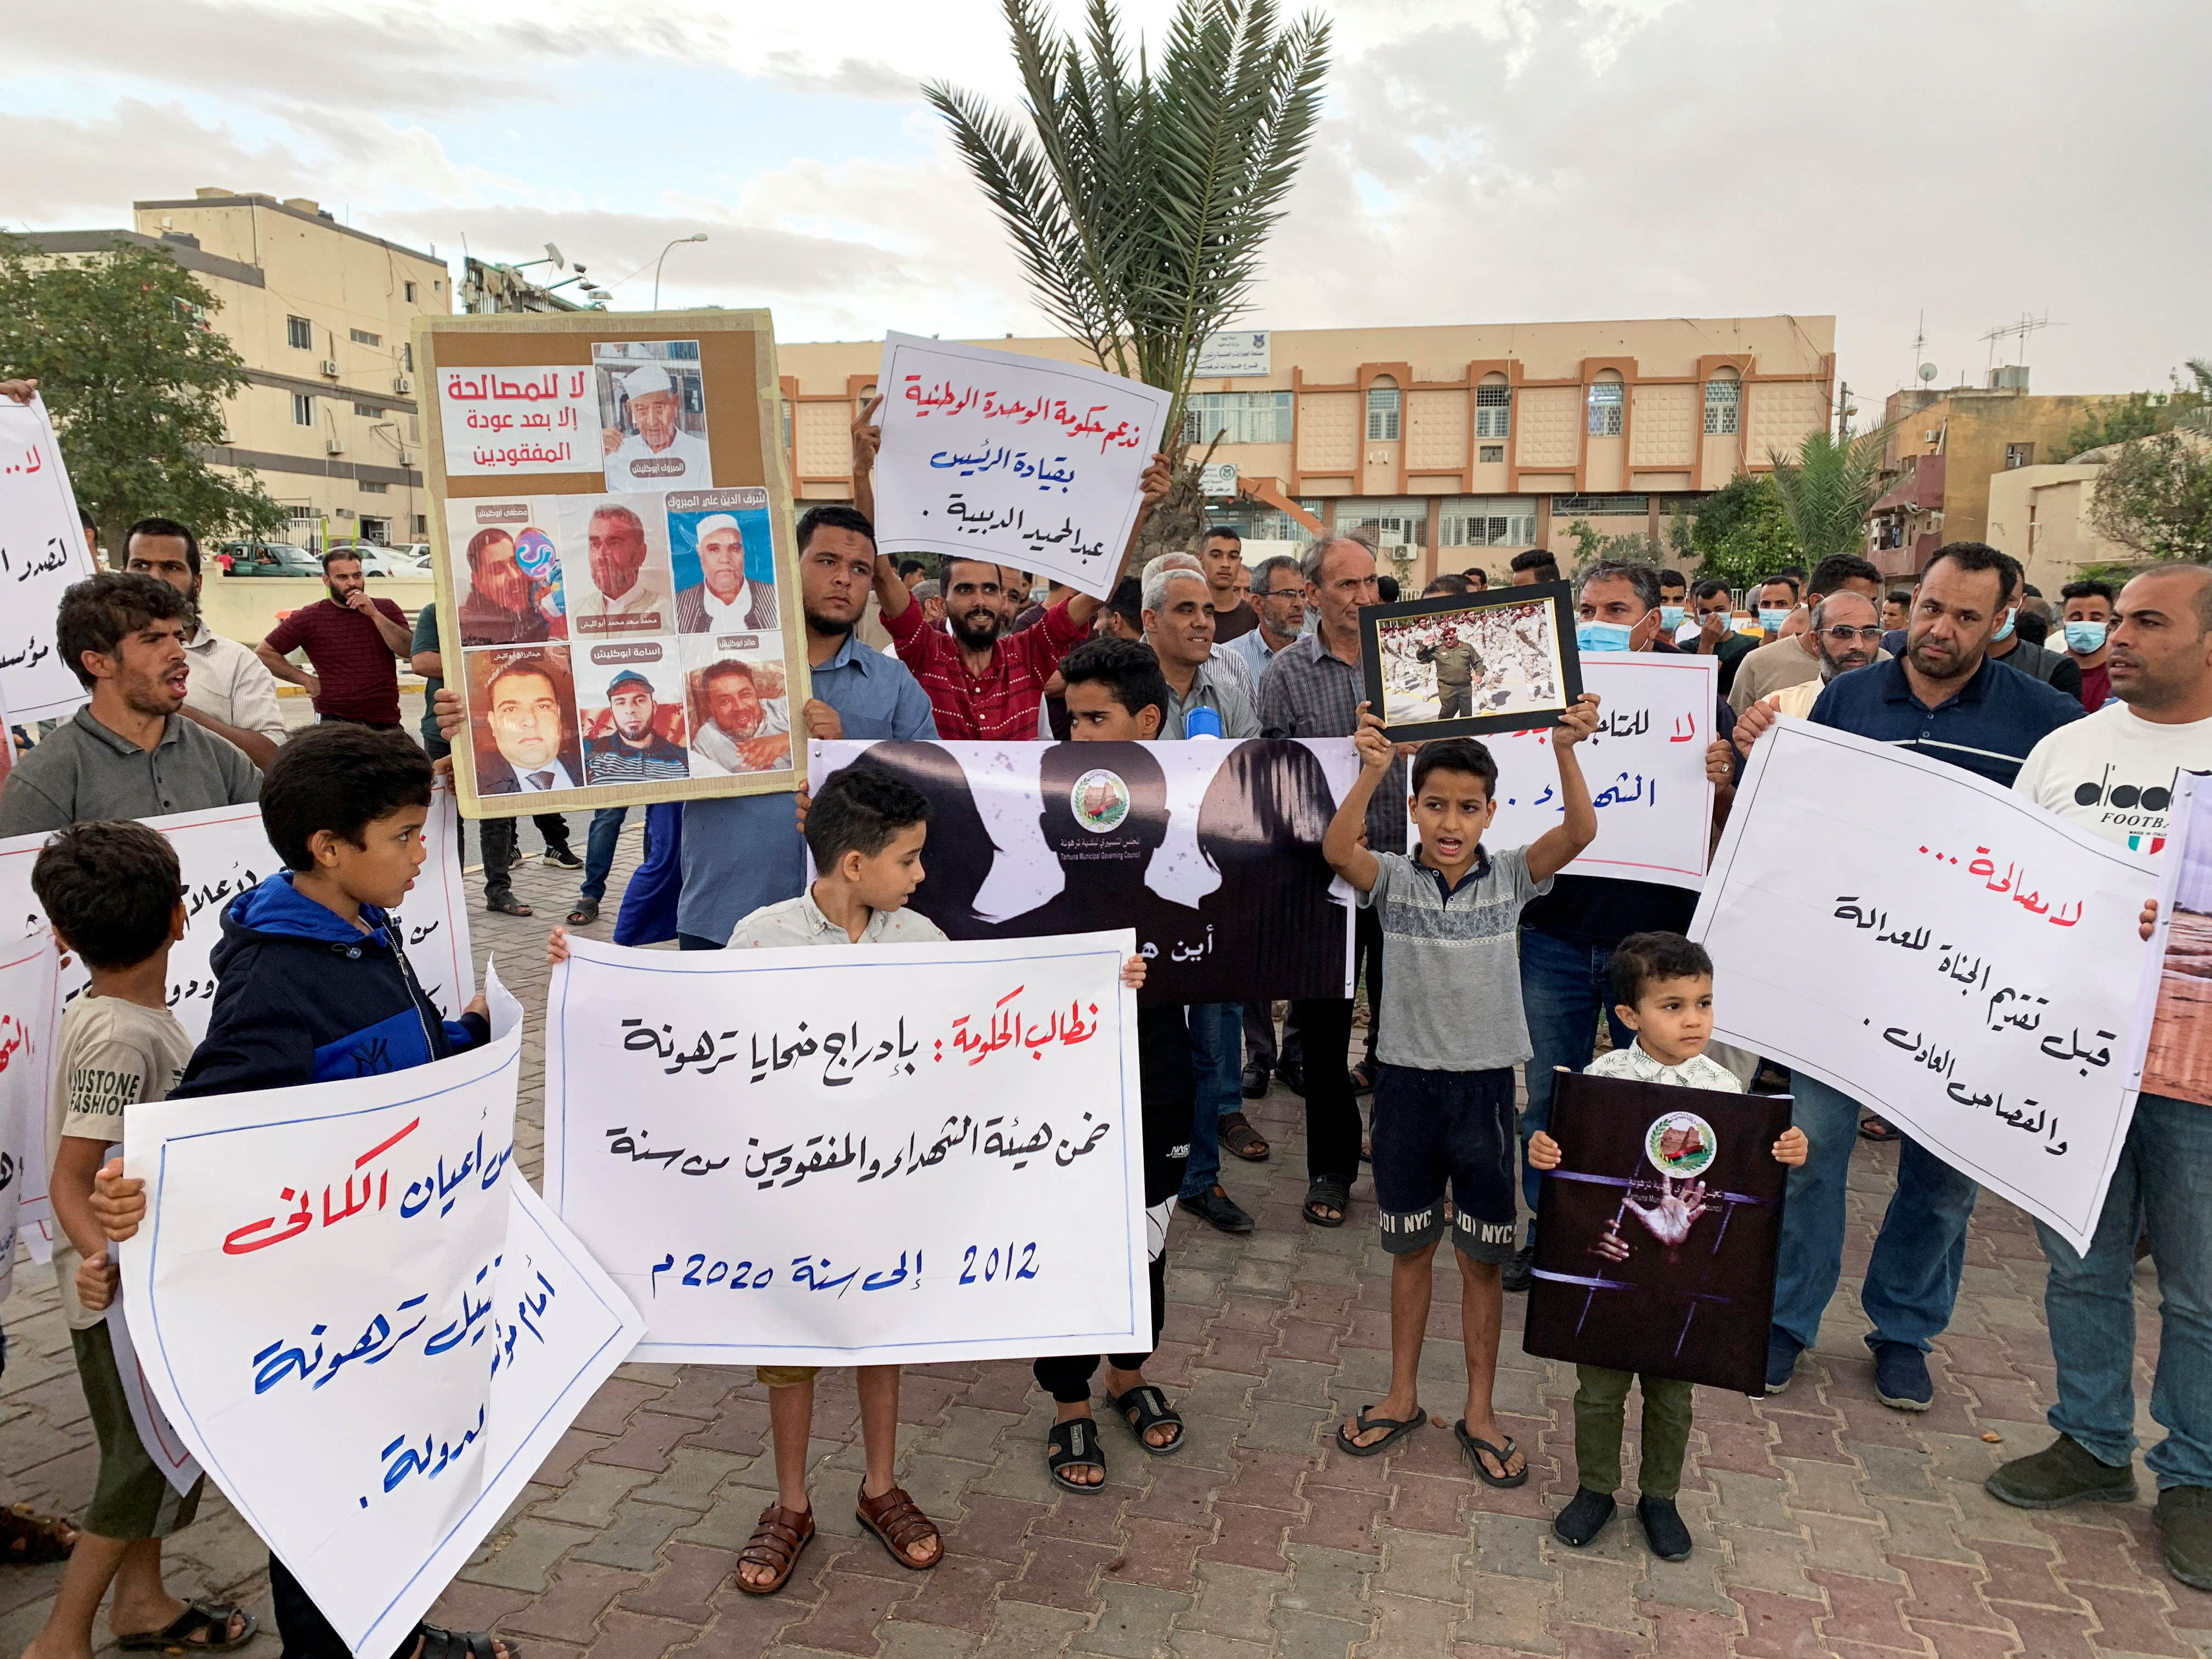 Families of victims hold signs as they demand justice for their missing ones and mass graves, in Tarhouna, Libya, Oct. 9, 2021.   REUTERS/Ayman Al-Sahili